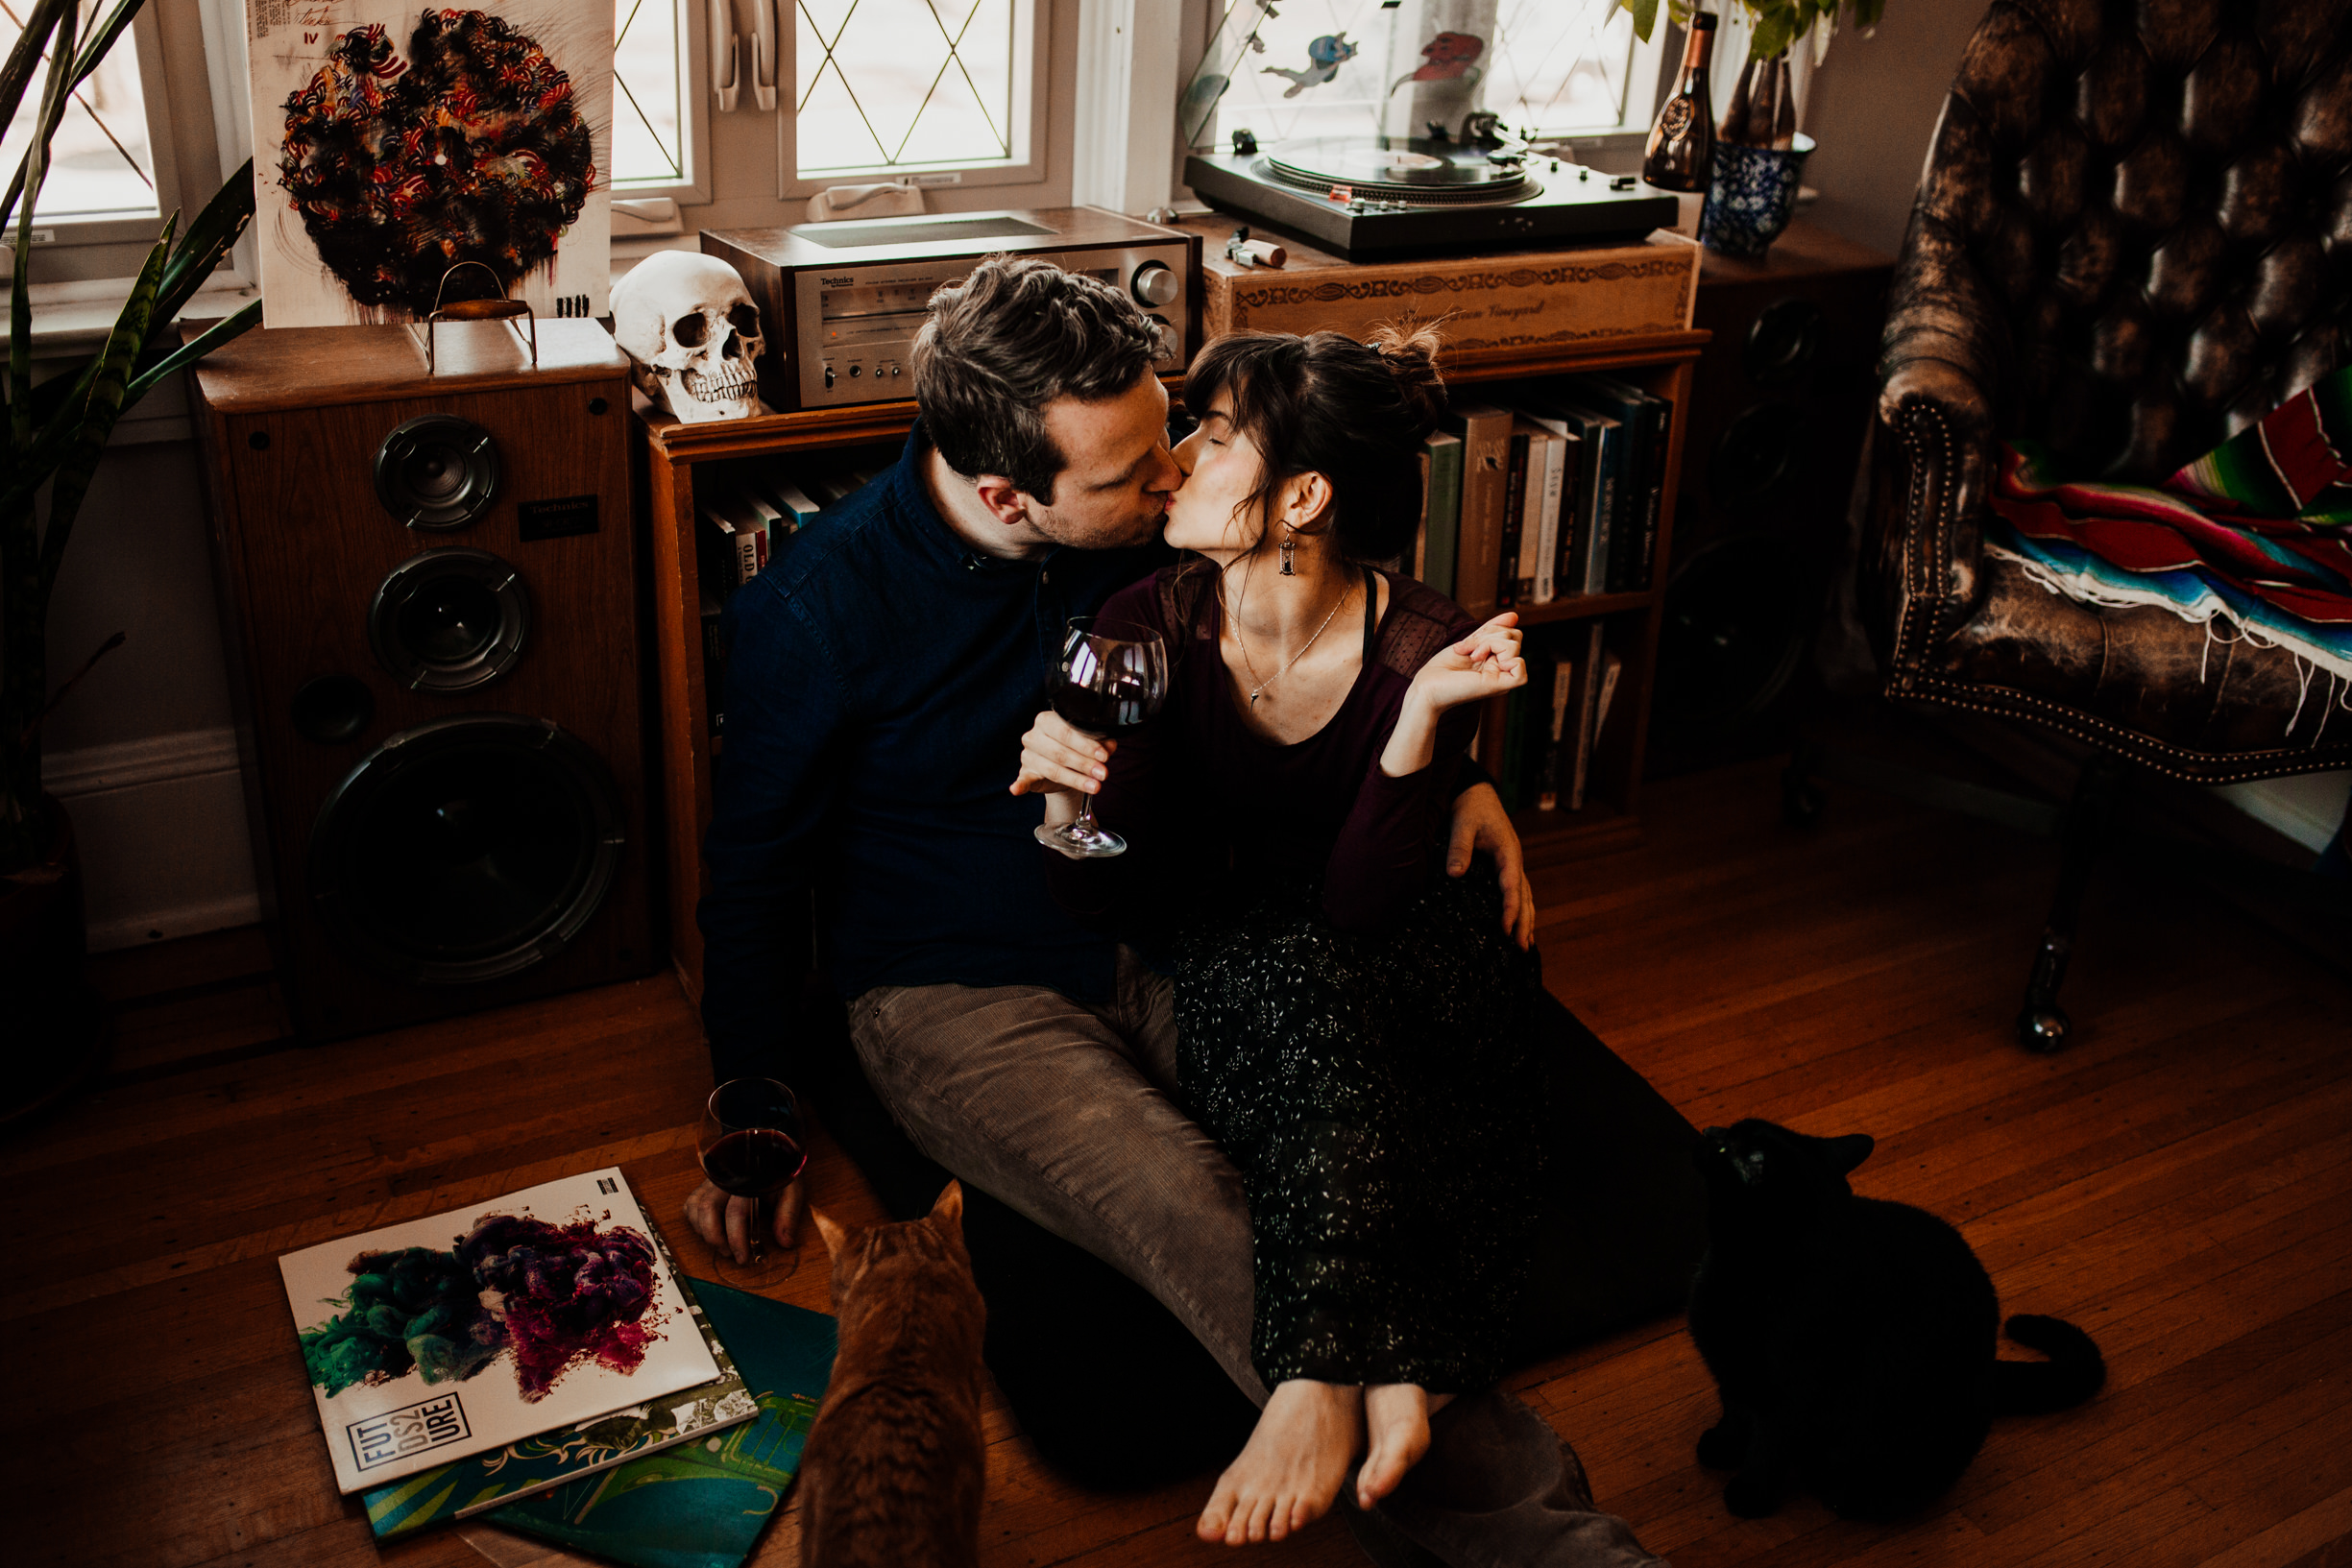 louisville-engagement-photographer-record-store-in-home-session-crystal-ludwick-photo (29 of 53).jpg